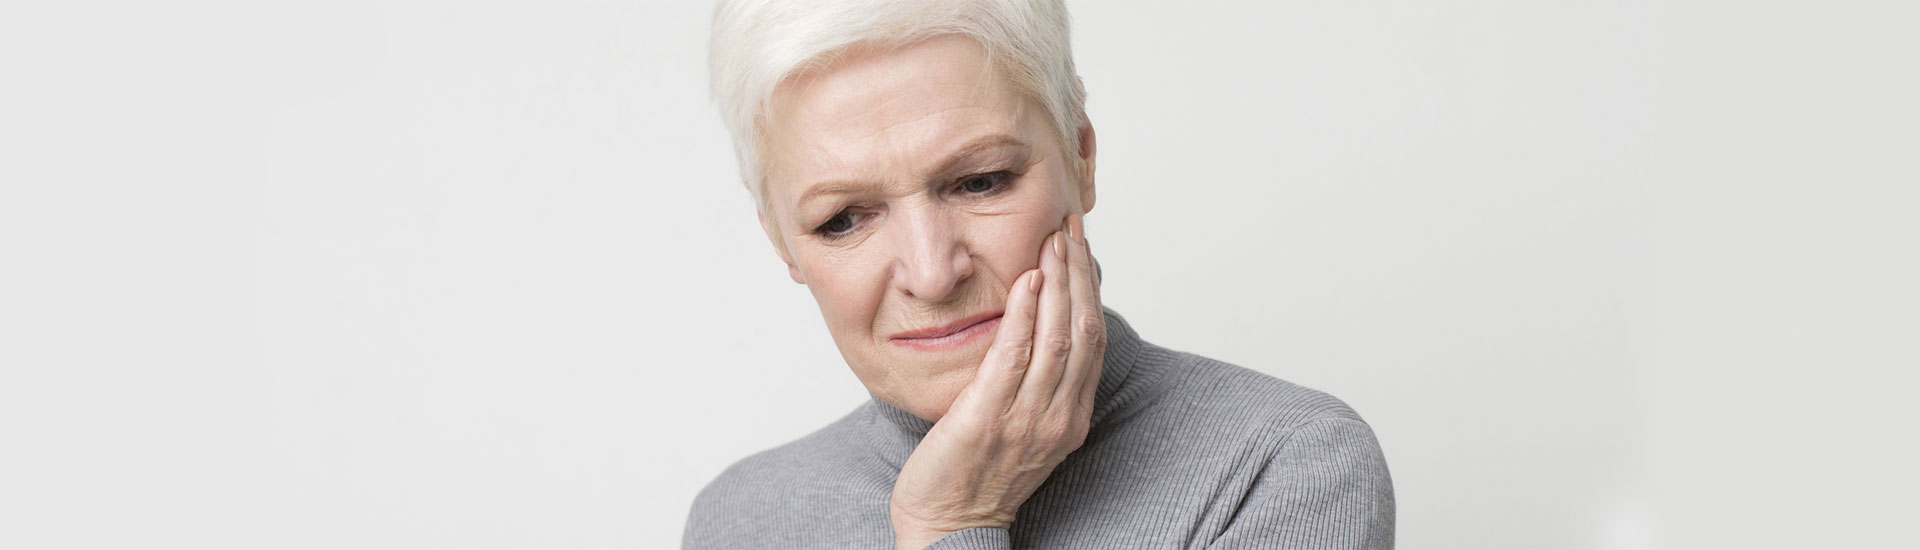 How To Treat The TMJ